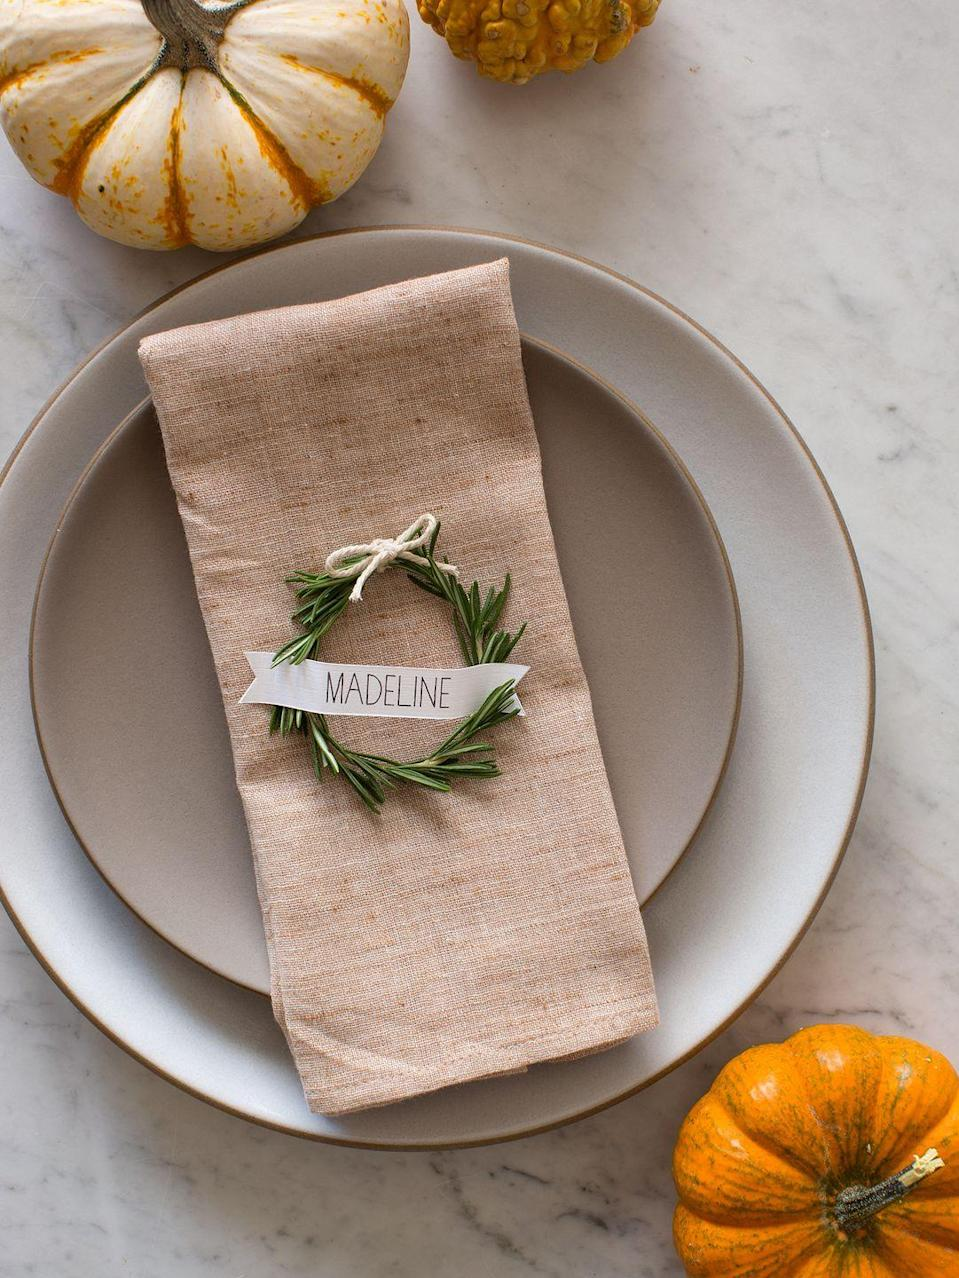 "<p>These perfectly circular wreaths will give your Thanksgiving table an elegant touch. </p><p><strong>Get the tutorial at <a href=""http://www.spoonforkbacon.com/2017/12/rosemary-wreath-place-cards/"" rel=""nofollow noopener"" target=""_blank"" data-ylk=""slk:Spoon Fork Bacon"" class=""link rapid-noclick-resp"">Spoon Fork Bacon</a>.</strong></p><p><strong><a class=""link rapid-noclick-resp"" href=""https://www.amazon.com/Silverware-LIANYU-20-Piece-Stainless-Dishwasher/dp/B07FFQ9RHK?tag=syn-yahoo-20&ascsubtag=%5Bartid%7C10050.g.1538%5Bsrc%7Cyahoo-us"" rel=""nofollow noopener"" target=""_blank"" data-ylk=""slk:SHOP COPPER FLATWARE"">SHOP COPPER FLATWARE</a><br></strong></p>"